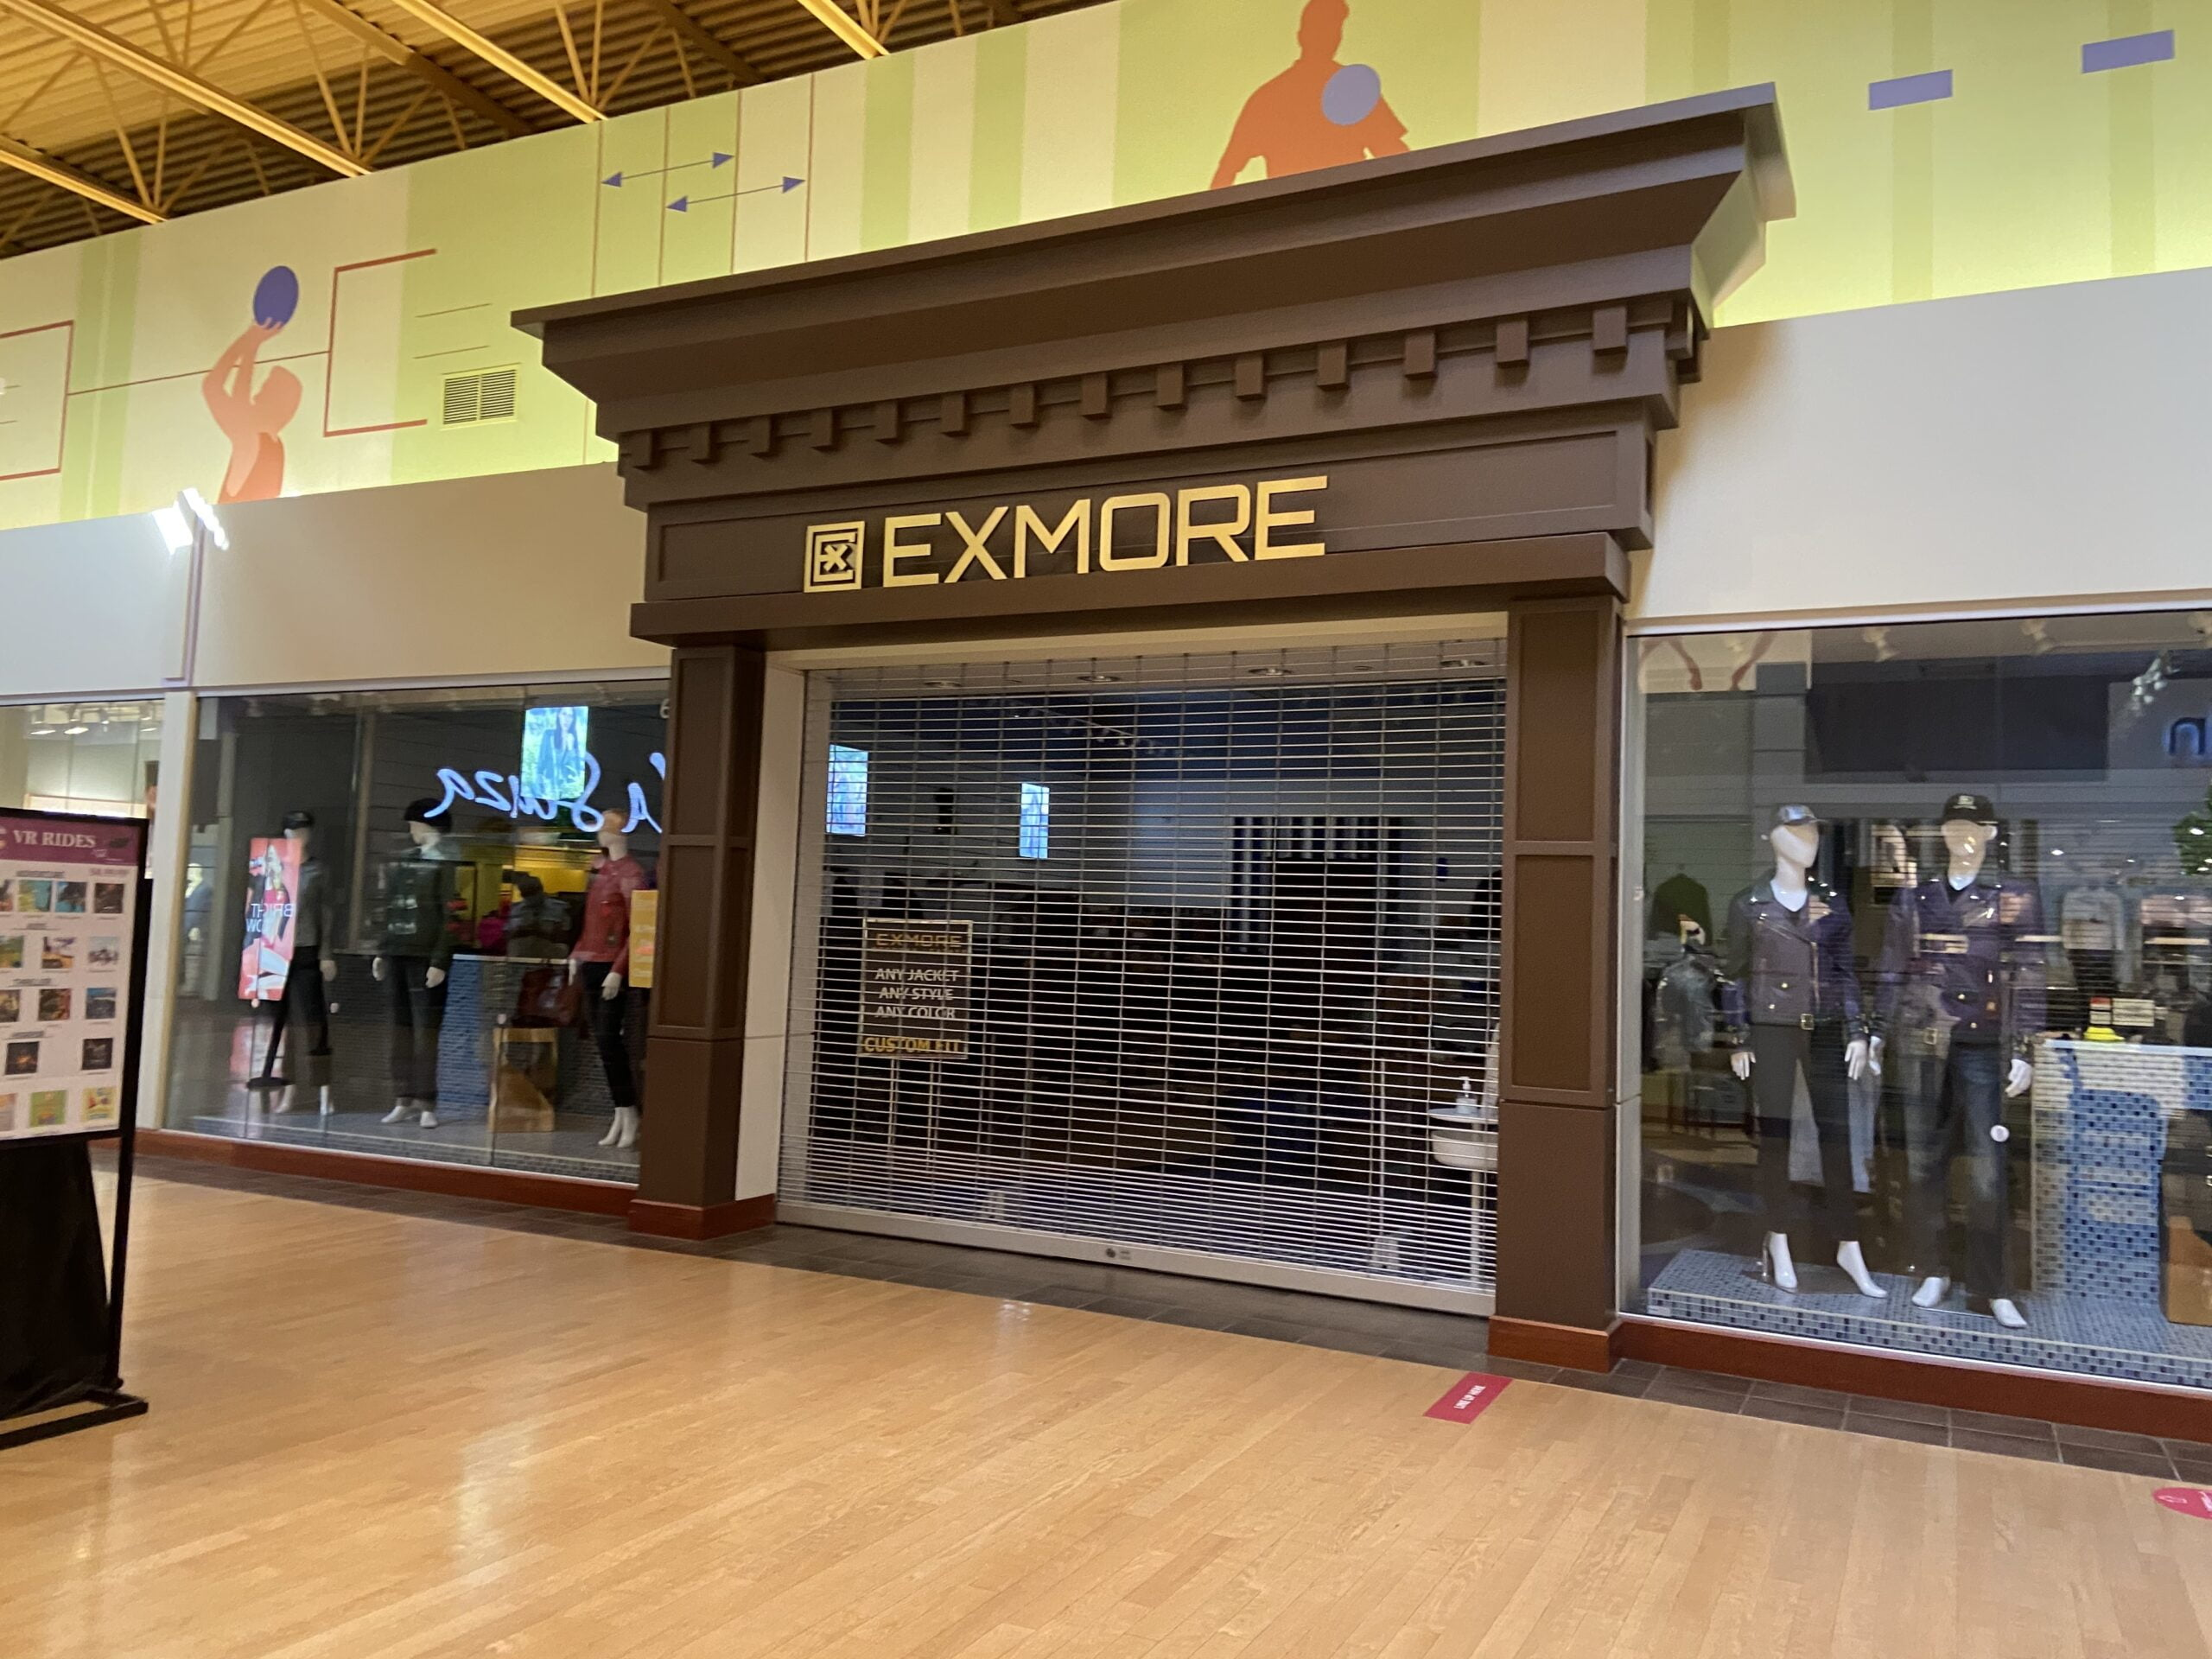 Exmore at CrossIron Mills